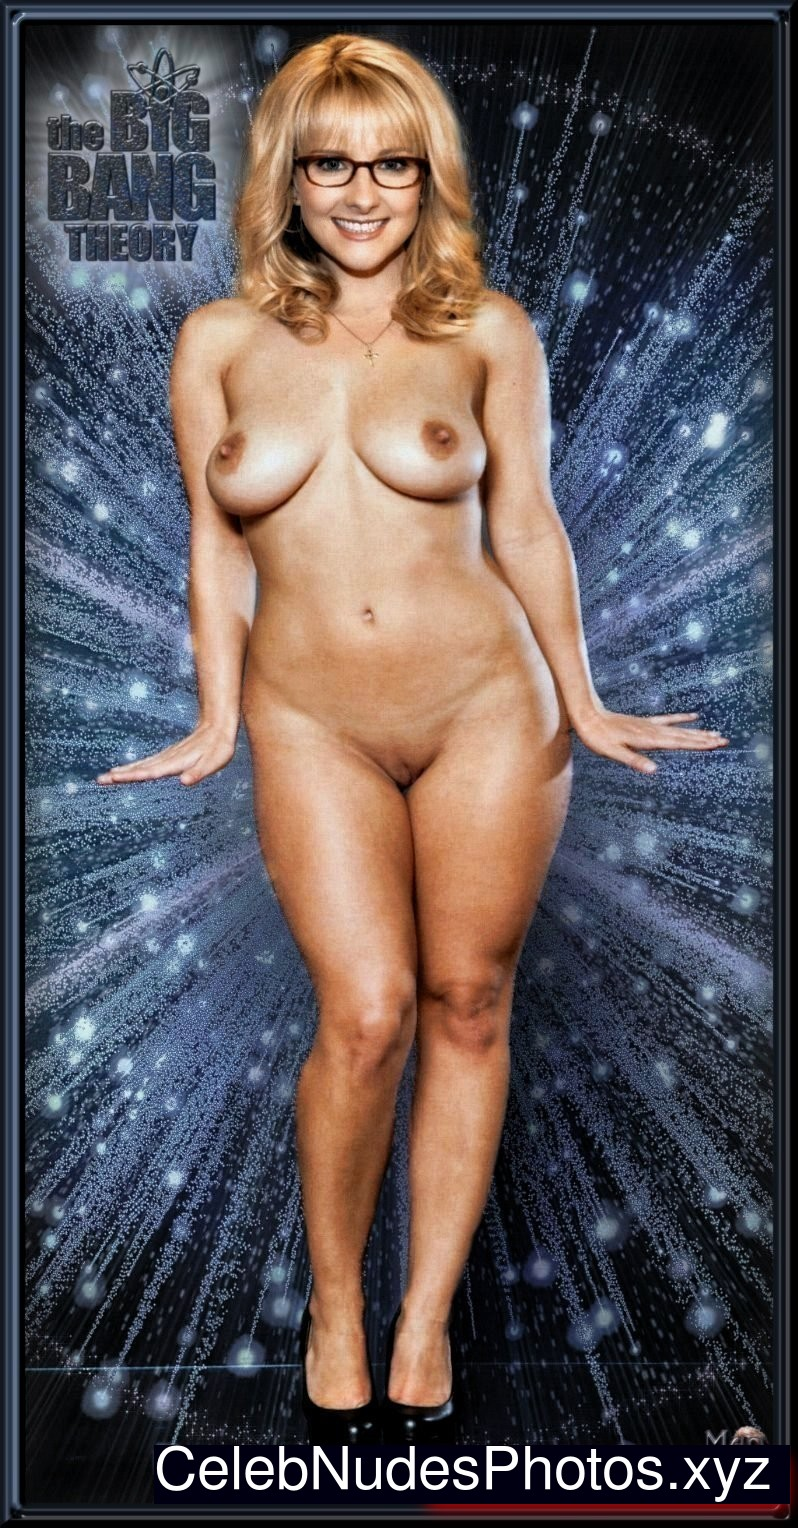 fake celebrity nude photos